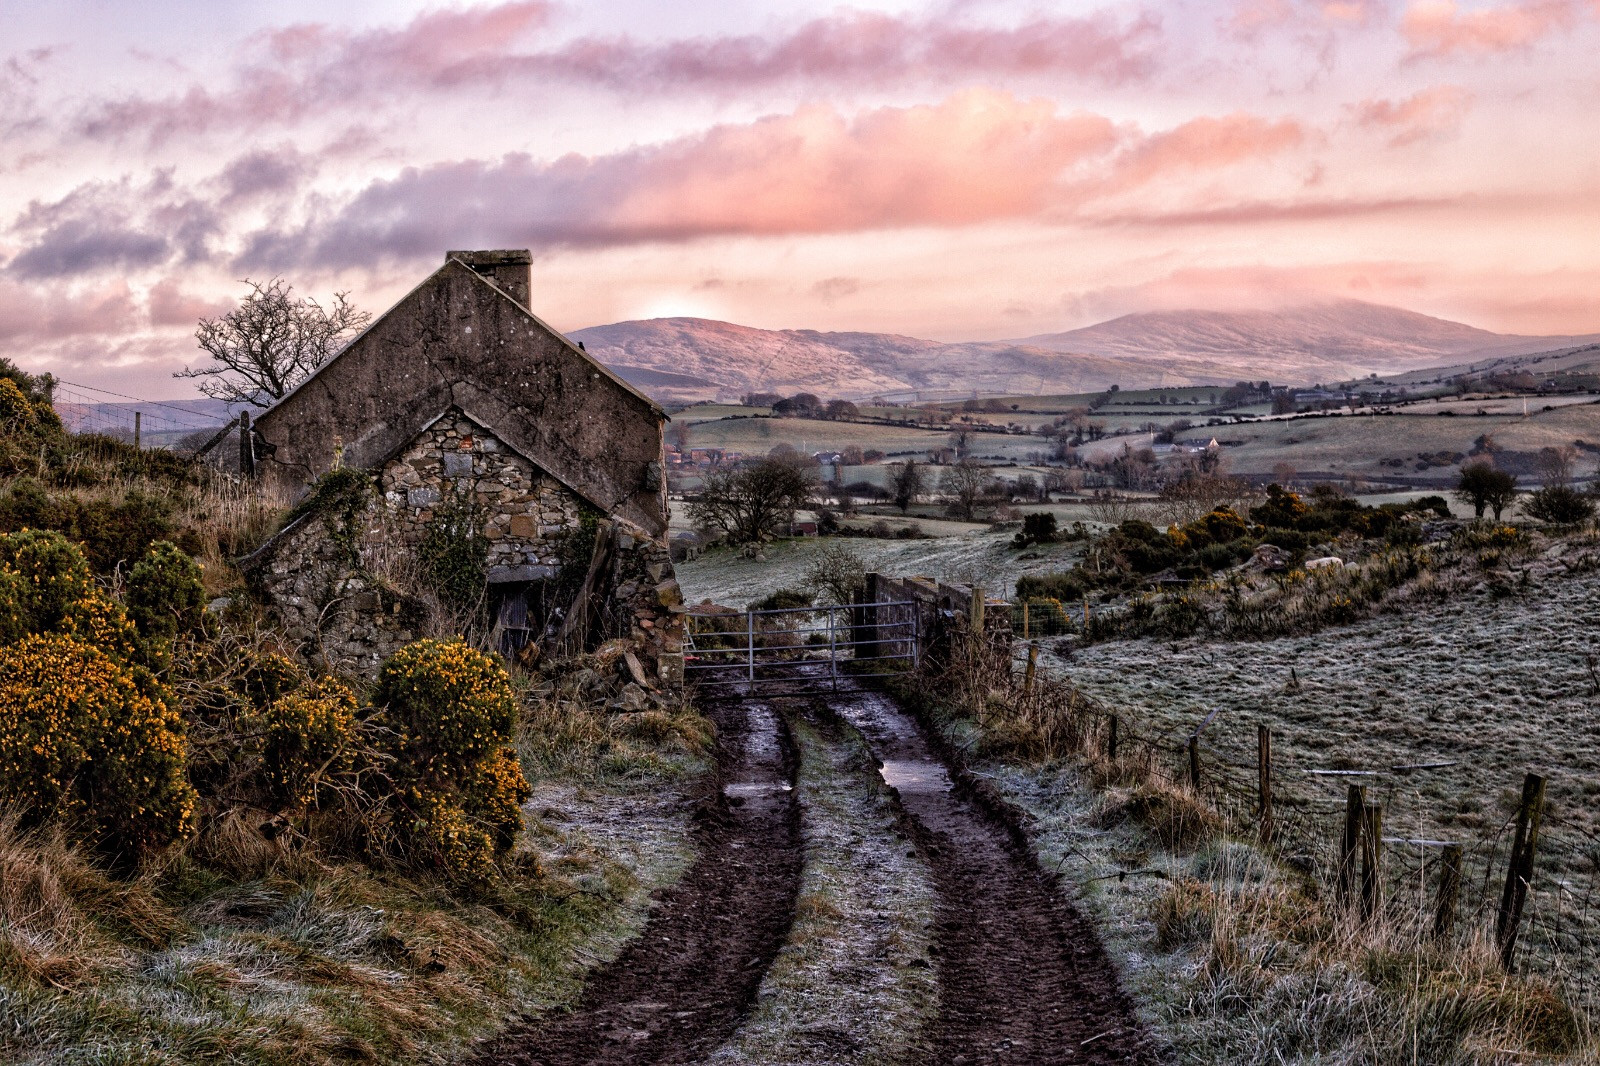 COLOUR - Frosty Morning Countryside by Gary Cowan (9 marks)